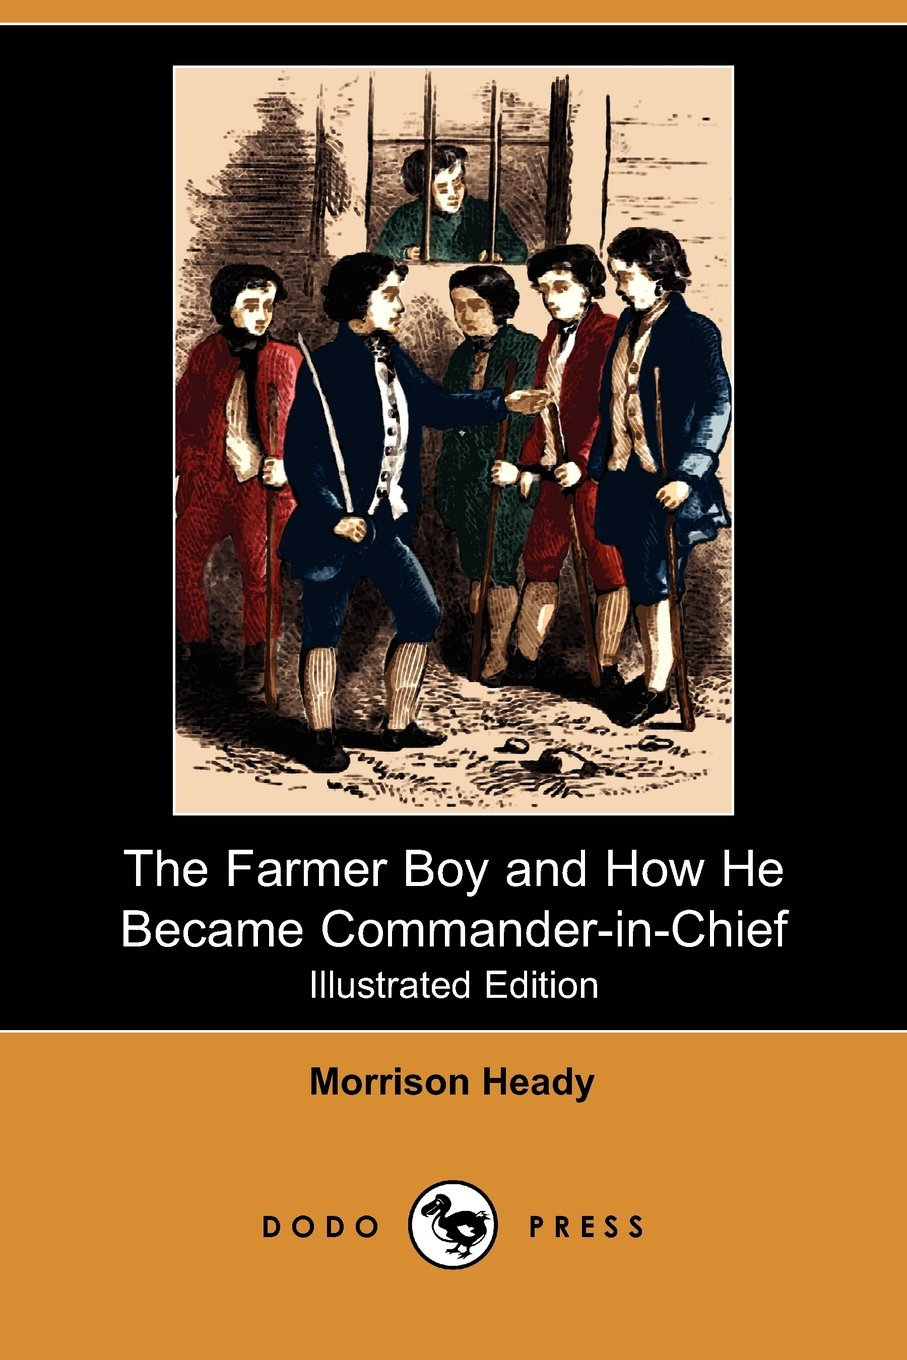 The Farmer Boy and How He Became Commander-In-Chief (Illustrated Edition) (Dodo Press): Morrison Heady, William Makepeace Thayer: 9781409964667: Amazon.com: ...